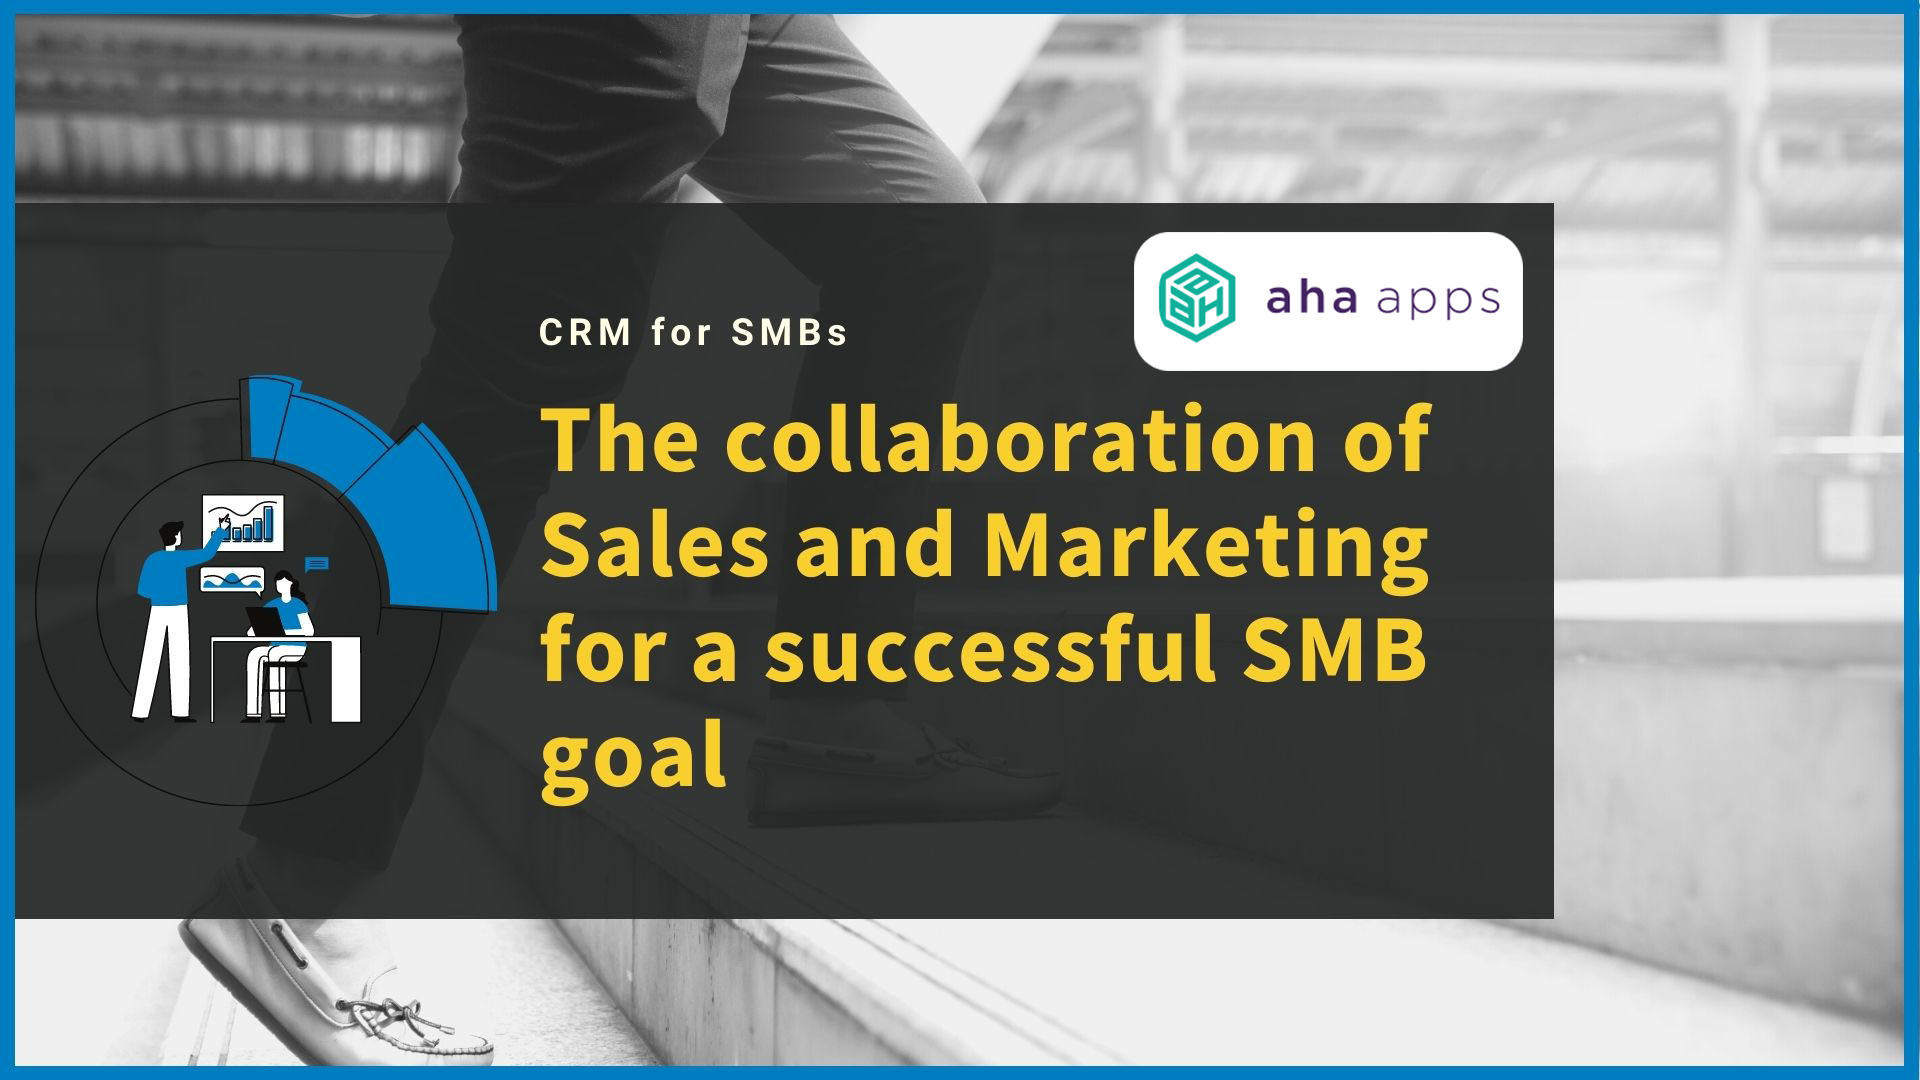 Sales and Marketing for a successful SMB goal - AhaApps